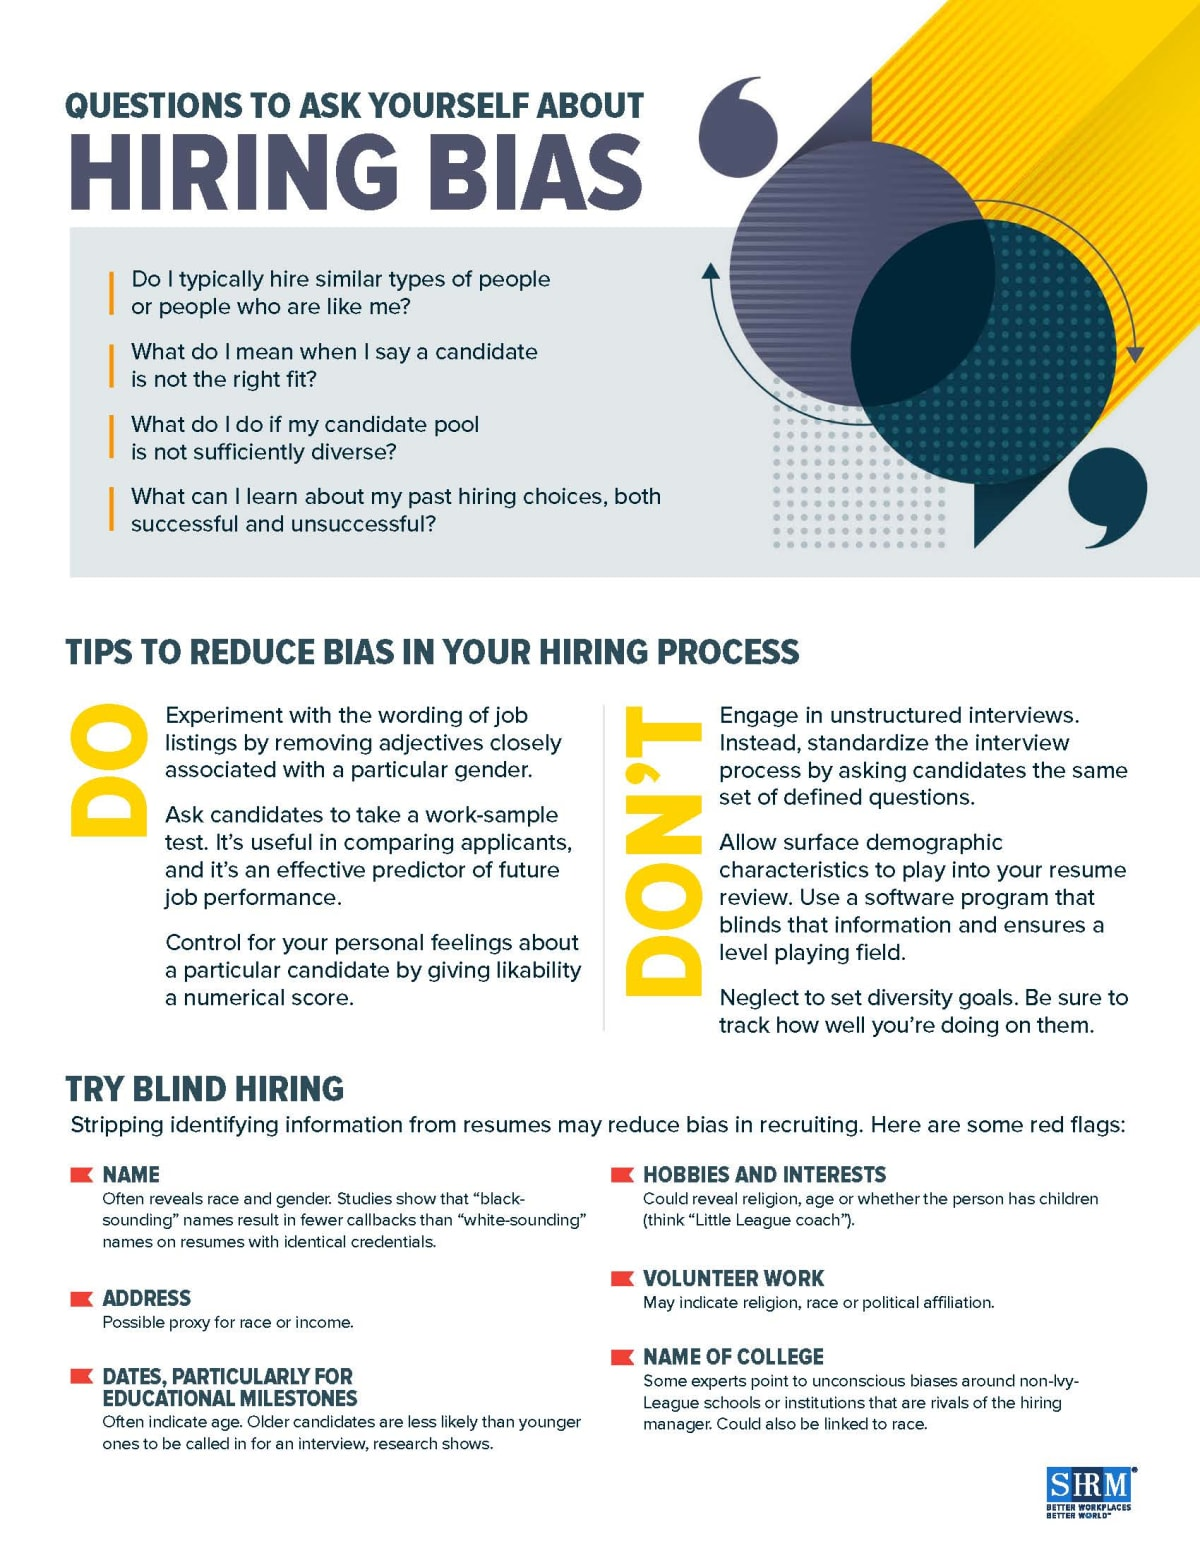 Questions to Ask about Hiring Bias